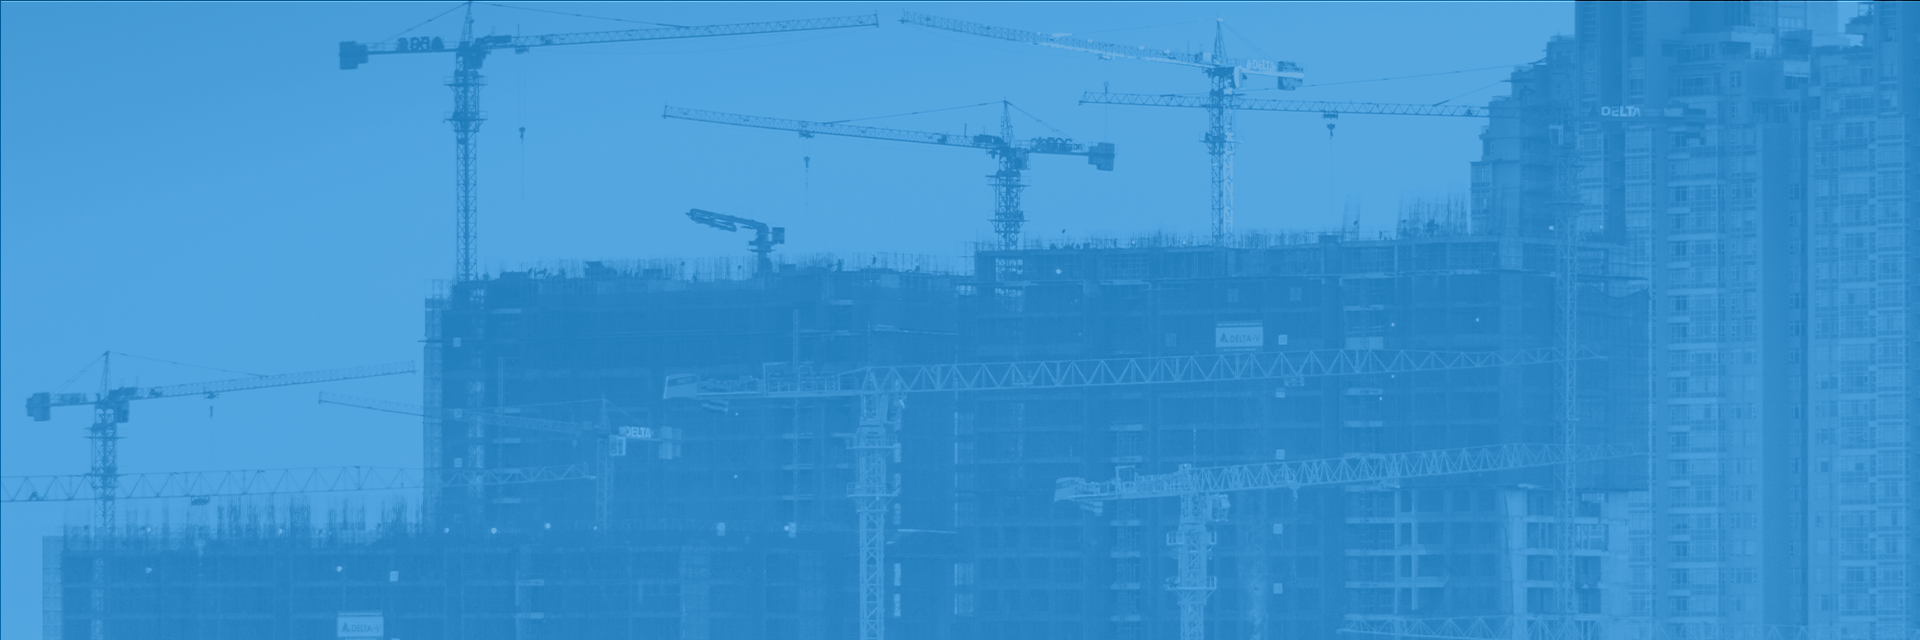 To cater to the rapidly growing construction sector, RIB and Microsoft have joined forces by creating a vertical cloud, MTWO. The aim of this solution is to enable and scale digital transformation for establishments in the construction and real estate sectors.